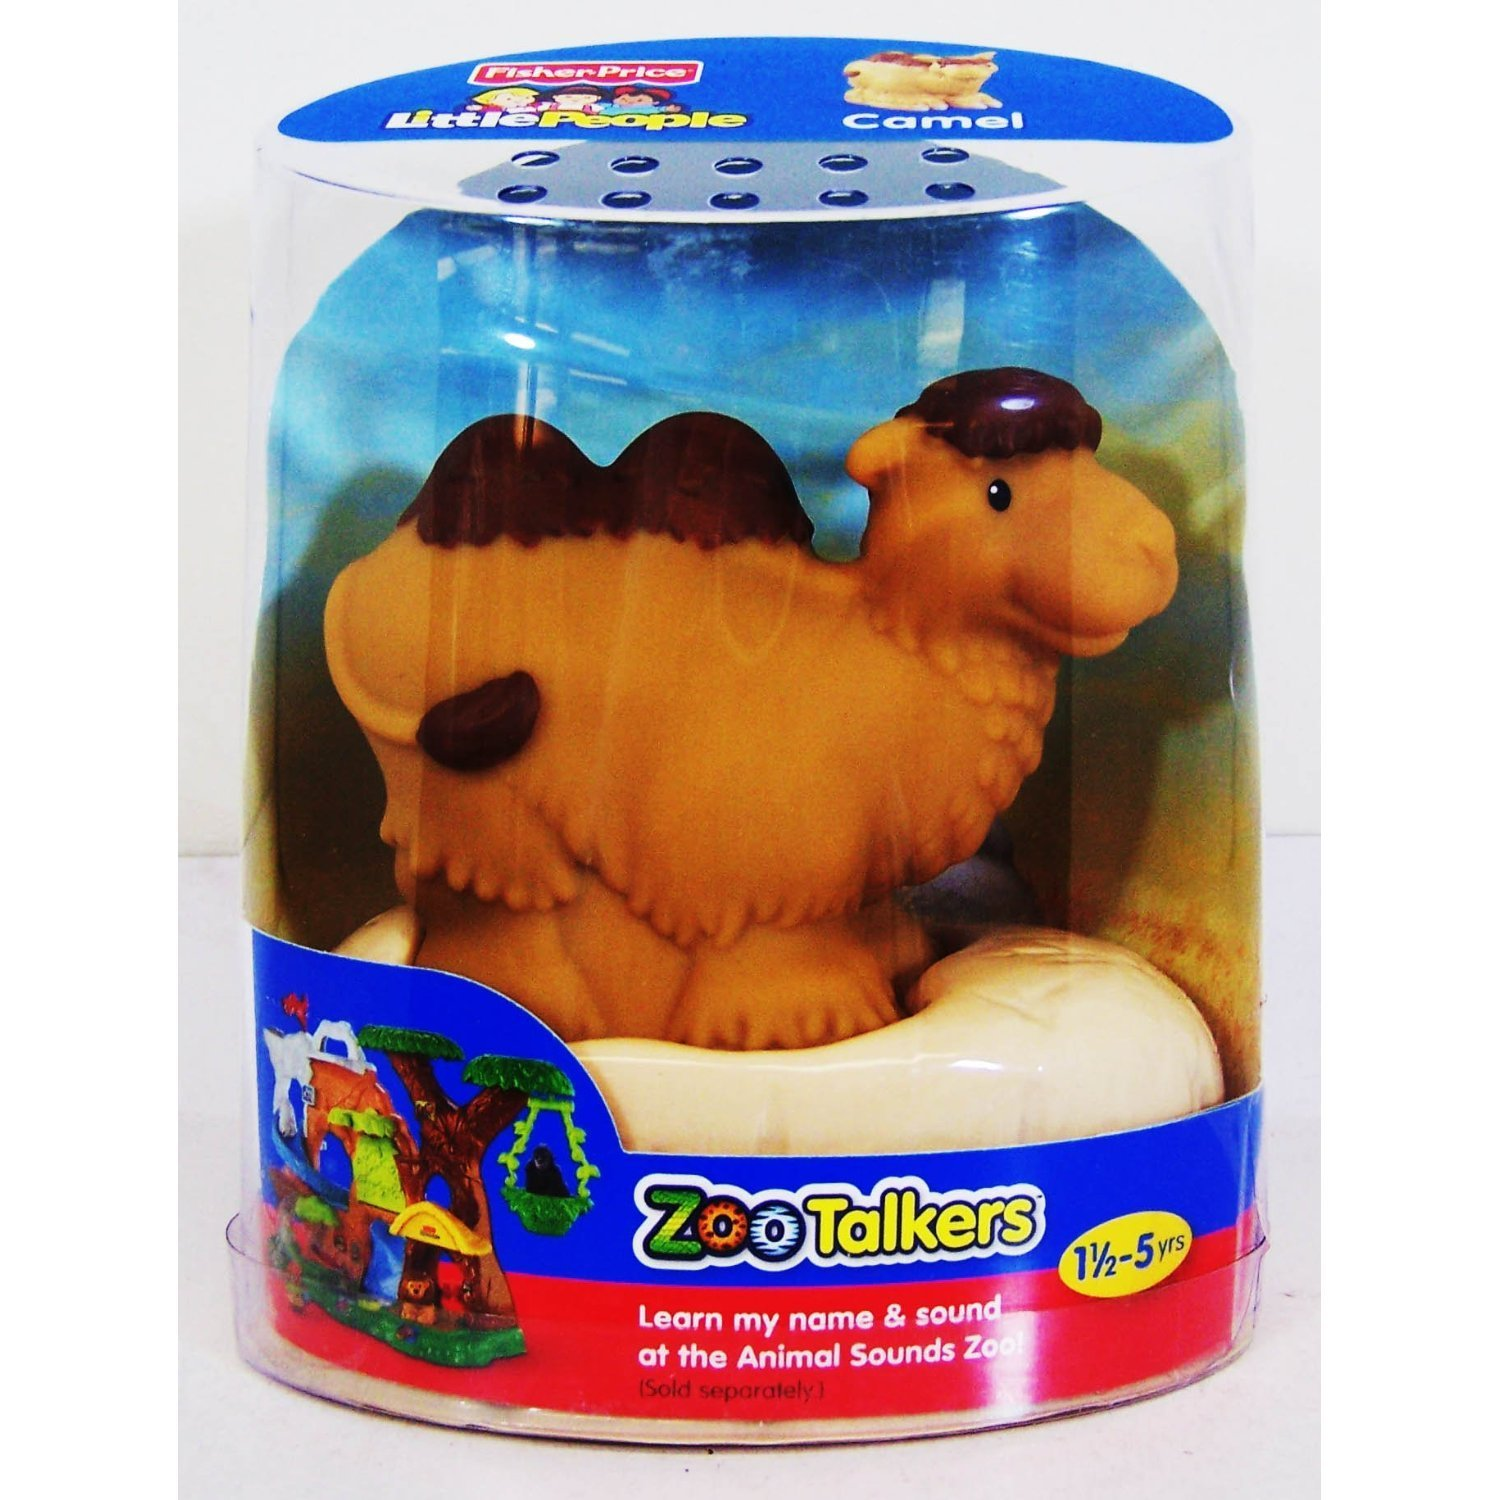 81442xfnq8L. SL1500  Amazon: Fisher Price Little People Zoo Talkers   Camel Only $5.12 (Reg. $14.99)